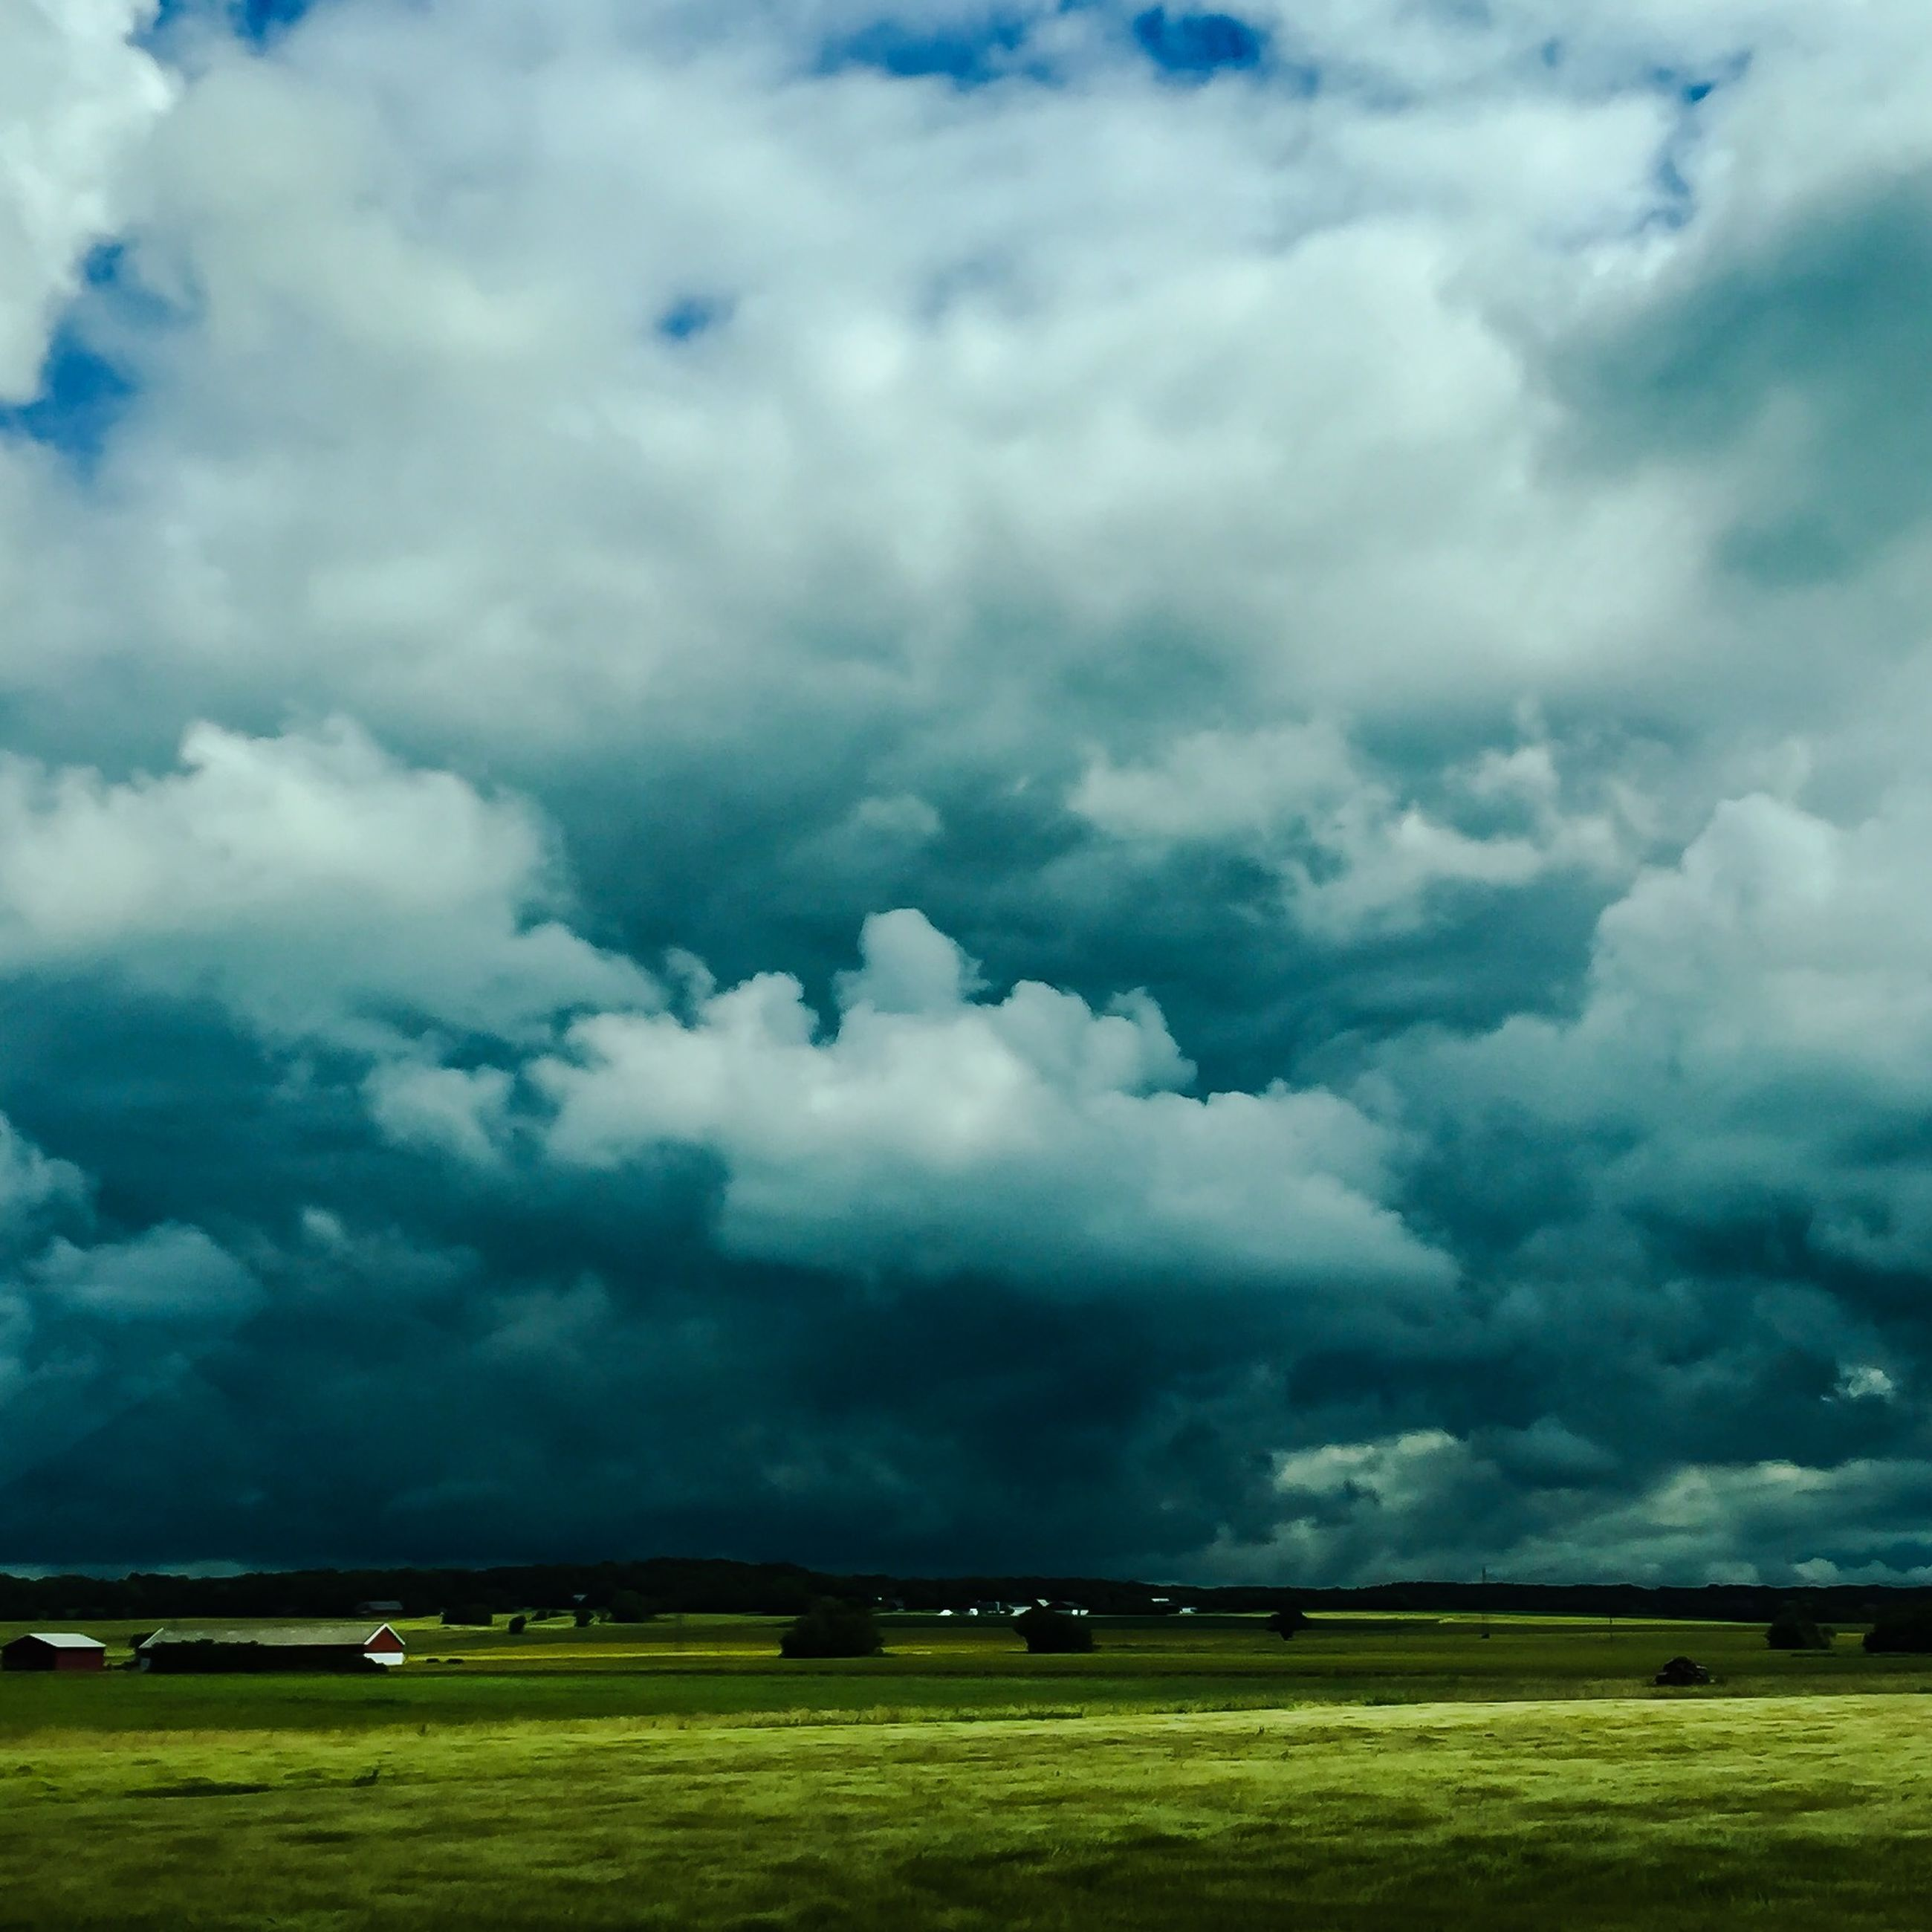 sky, cloud - sky, cloudy, tranquil scene, scenics, landscape, tranquility, beauty in nature, field, weather, cloud, nature, grass, overcast, cloudscape, storm cloud, idyllic, dramatic sky, outdoors, green color